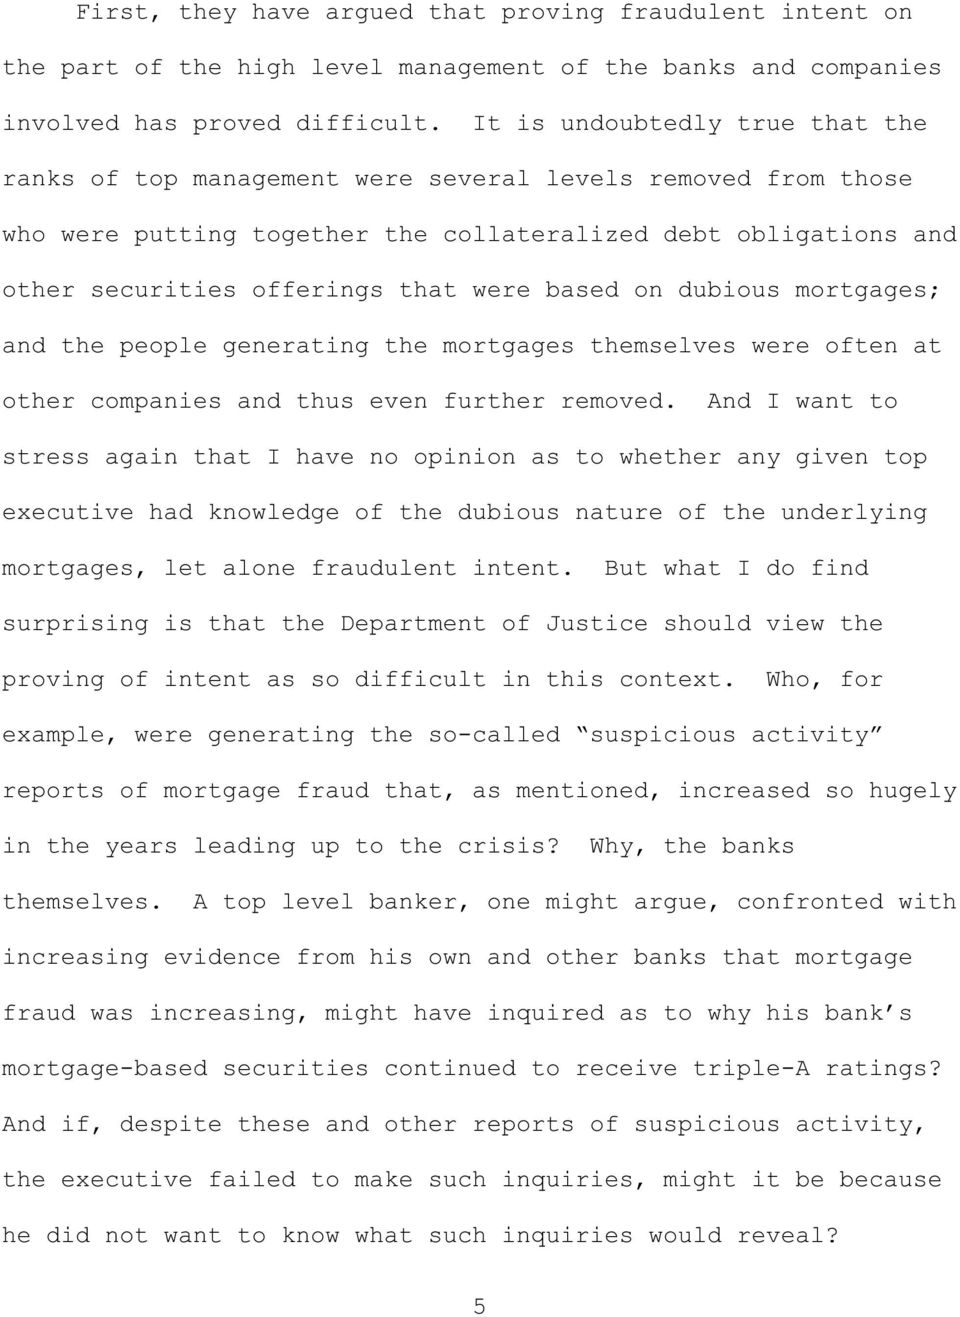 based on dubious mortgages; and the people generating the mortgages themselves were often at other companies and thus even further removed.